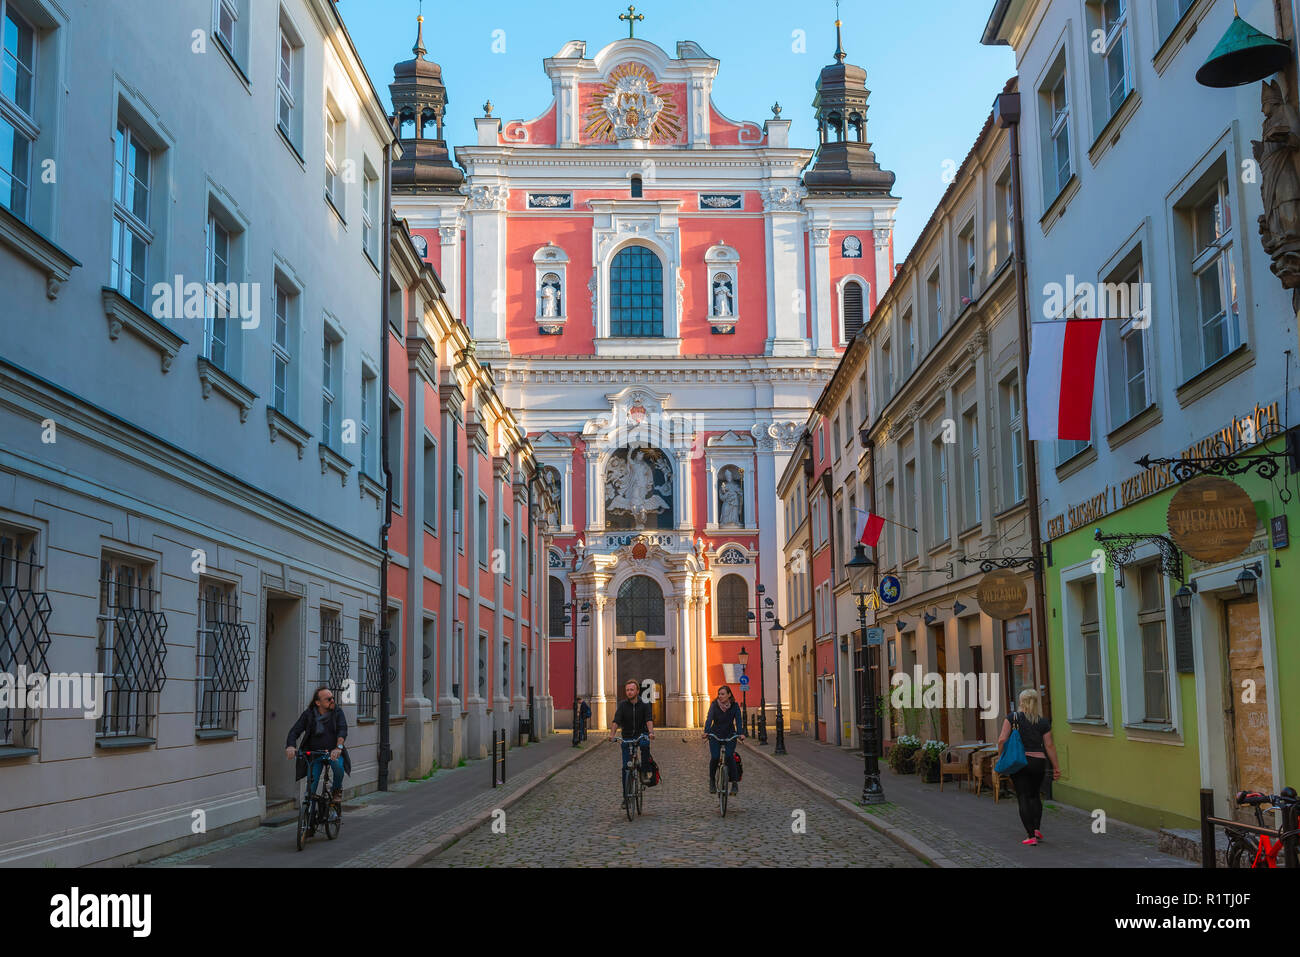 Poznan city Poland, view of people riding their bikes in Poznan Old Town with the Baroque facade of St Stanislaus Church in the background, Poland. - Stock Image